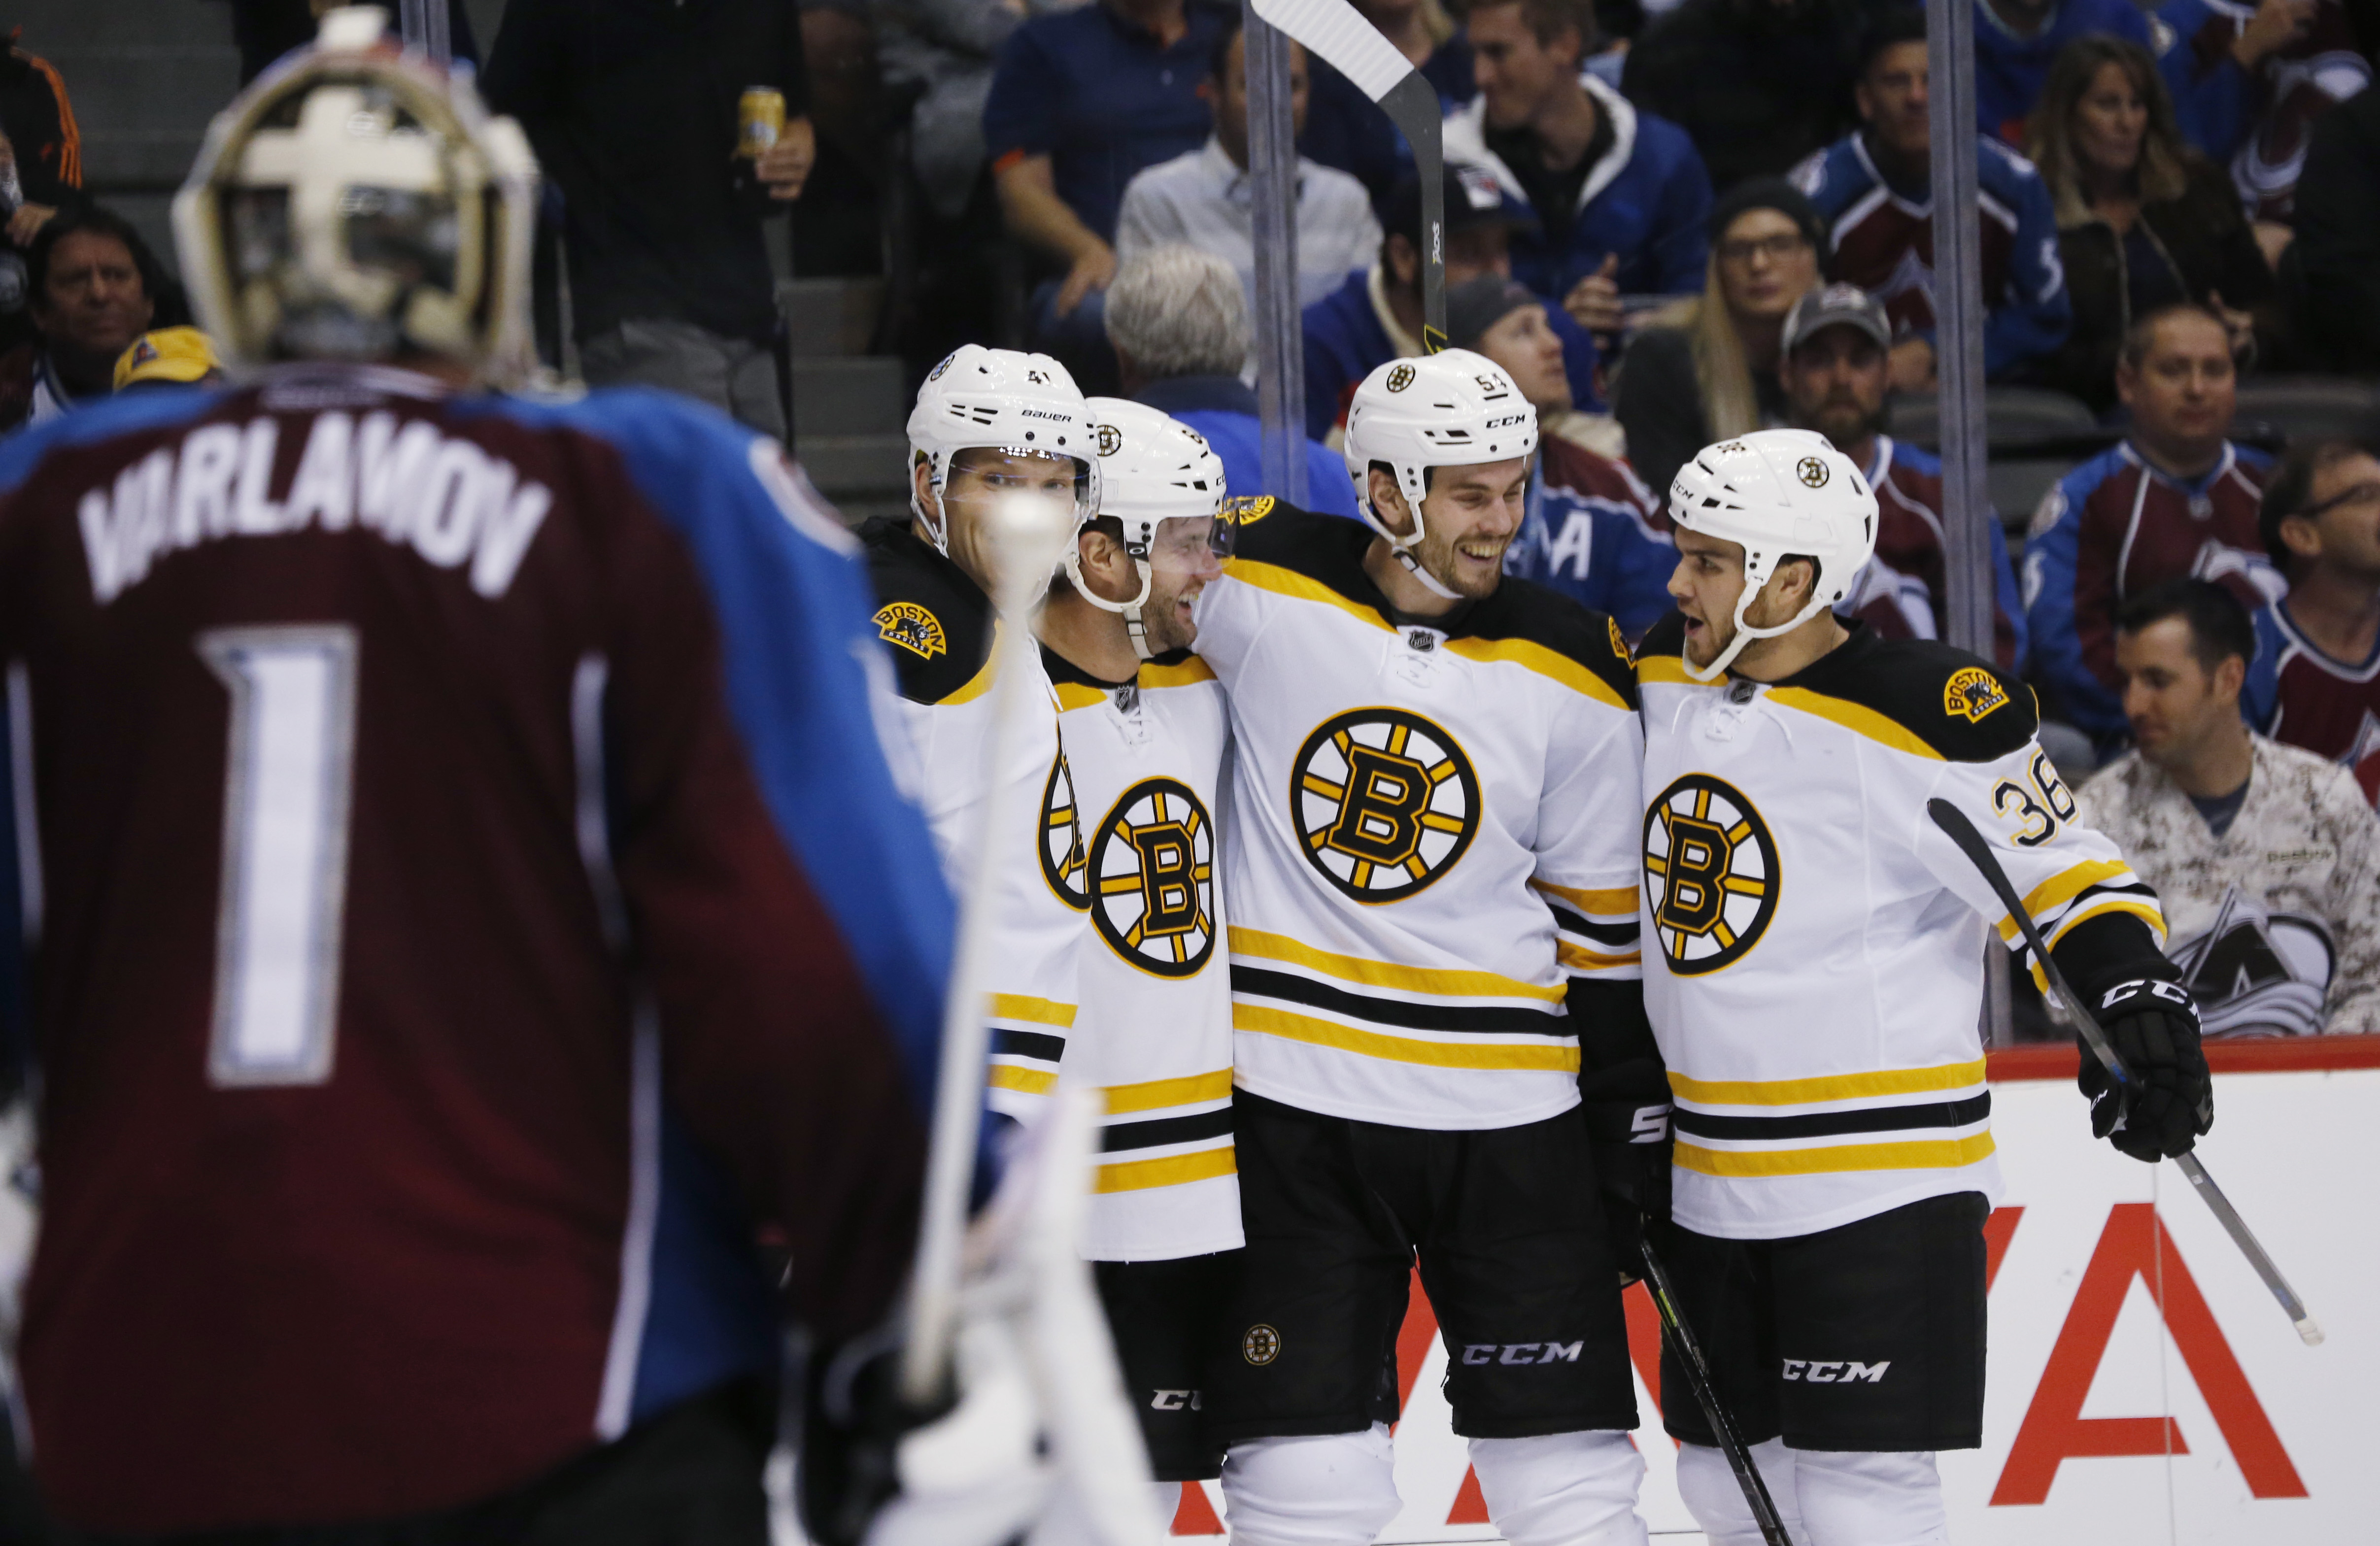 Colorado Avalanche goalie Semyon Varlamov, front, of Russia, watches as Boston Bruins left wing Joonas Kemppainen, back left, of Finland, celebrates with right wing Tyler Randell, defenseman Adam McQuaid and center Zac Rinaldo, from left at rear, after Ra